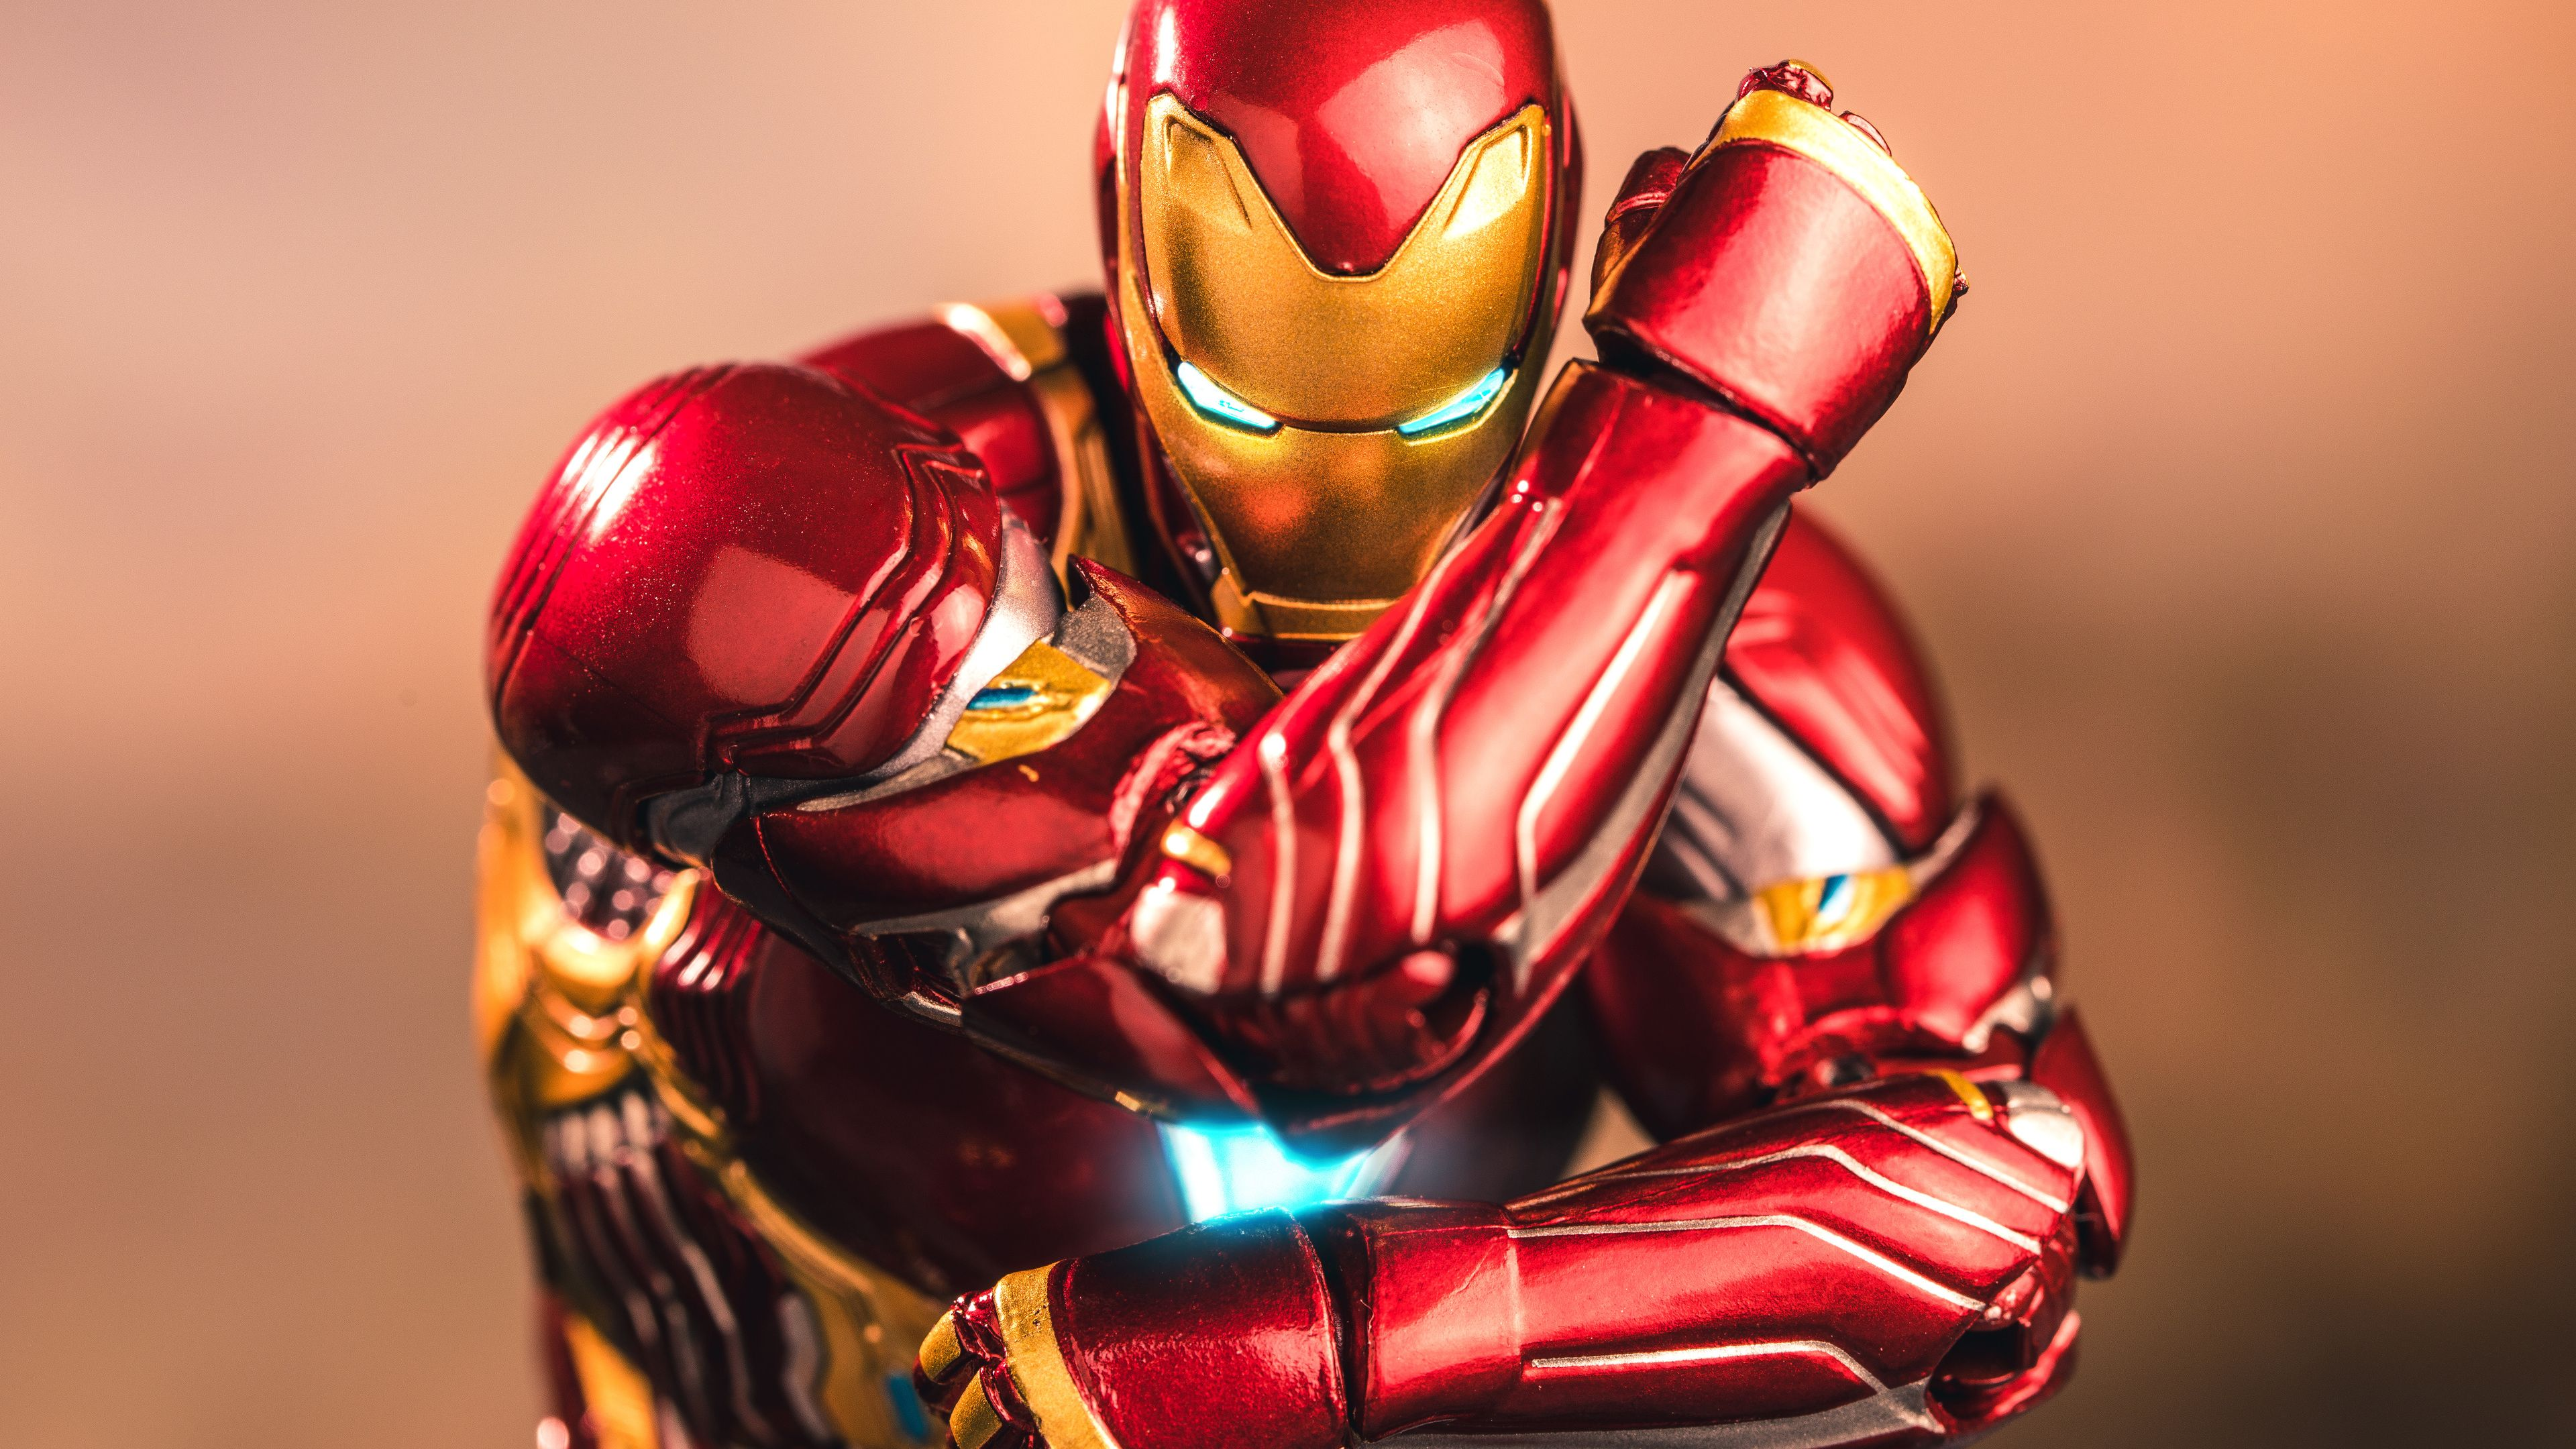 Iron Man New 4k Superheroes Wallpapers Iron Man Wallpapers Hd Wallpapers 5k Wallpapers 4k Wallpapers Iron Man Wallpaper Iron Man Iron Man Hd Wallpaper